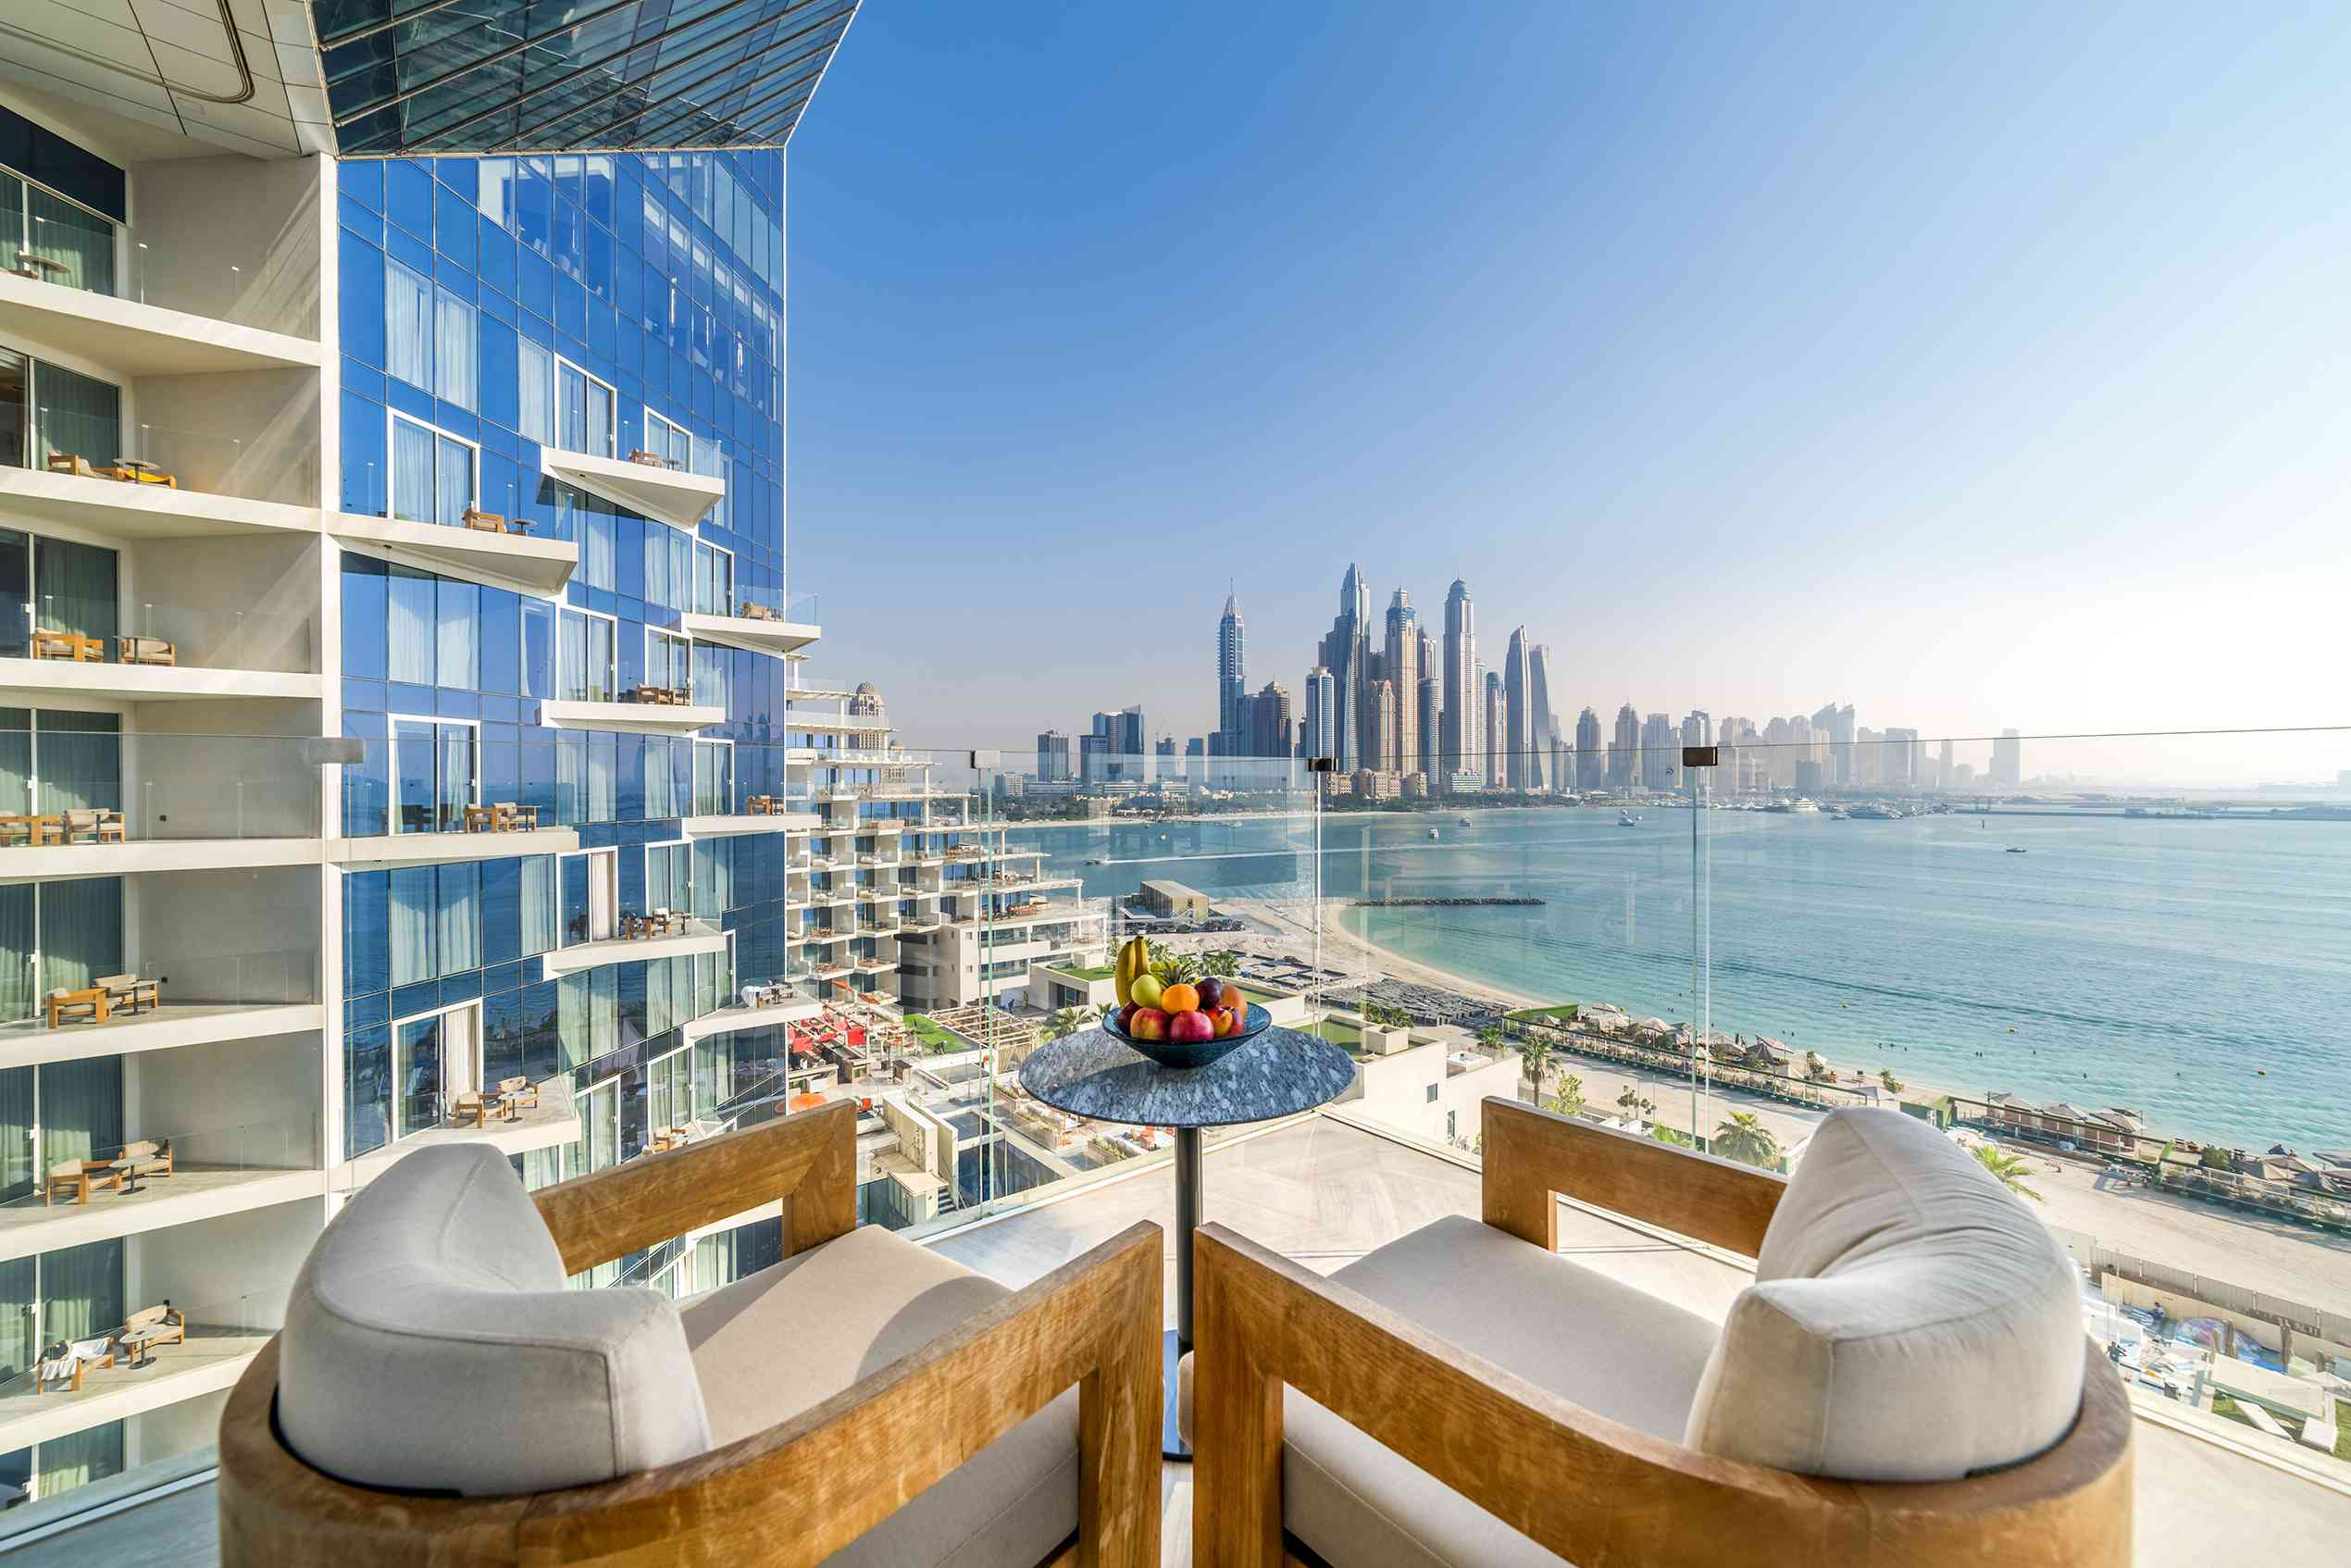 two chairs on an outdoor patio with the ocean and Dubai skyline in the distance